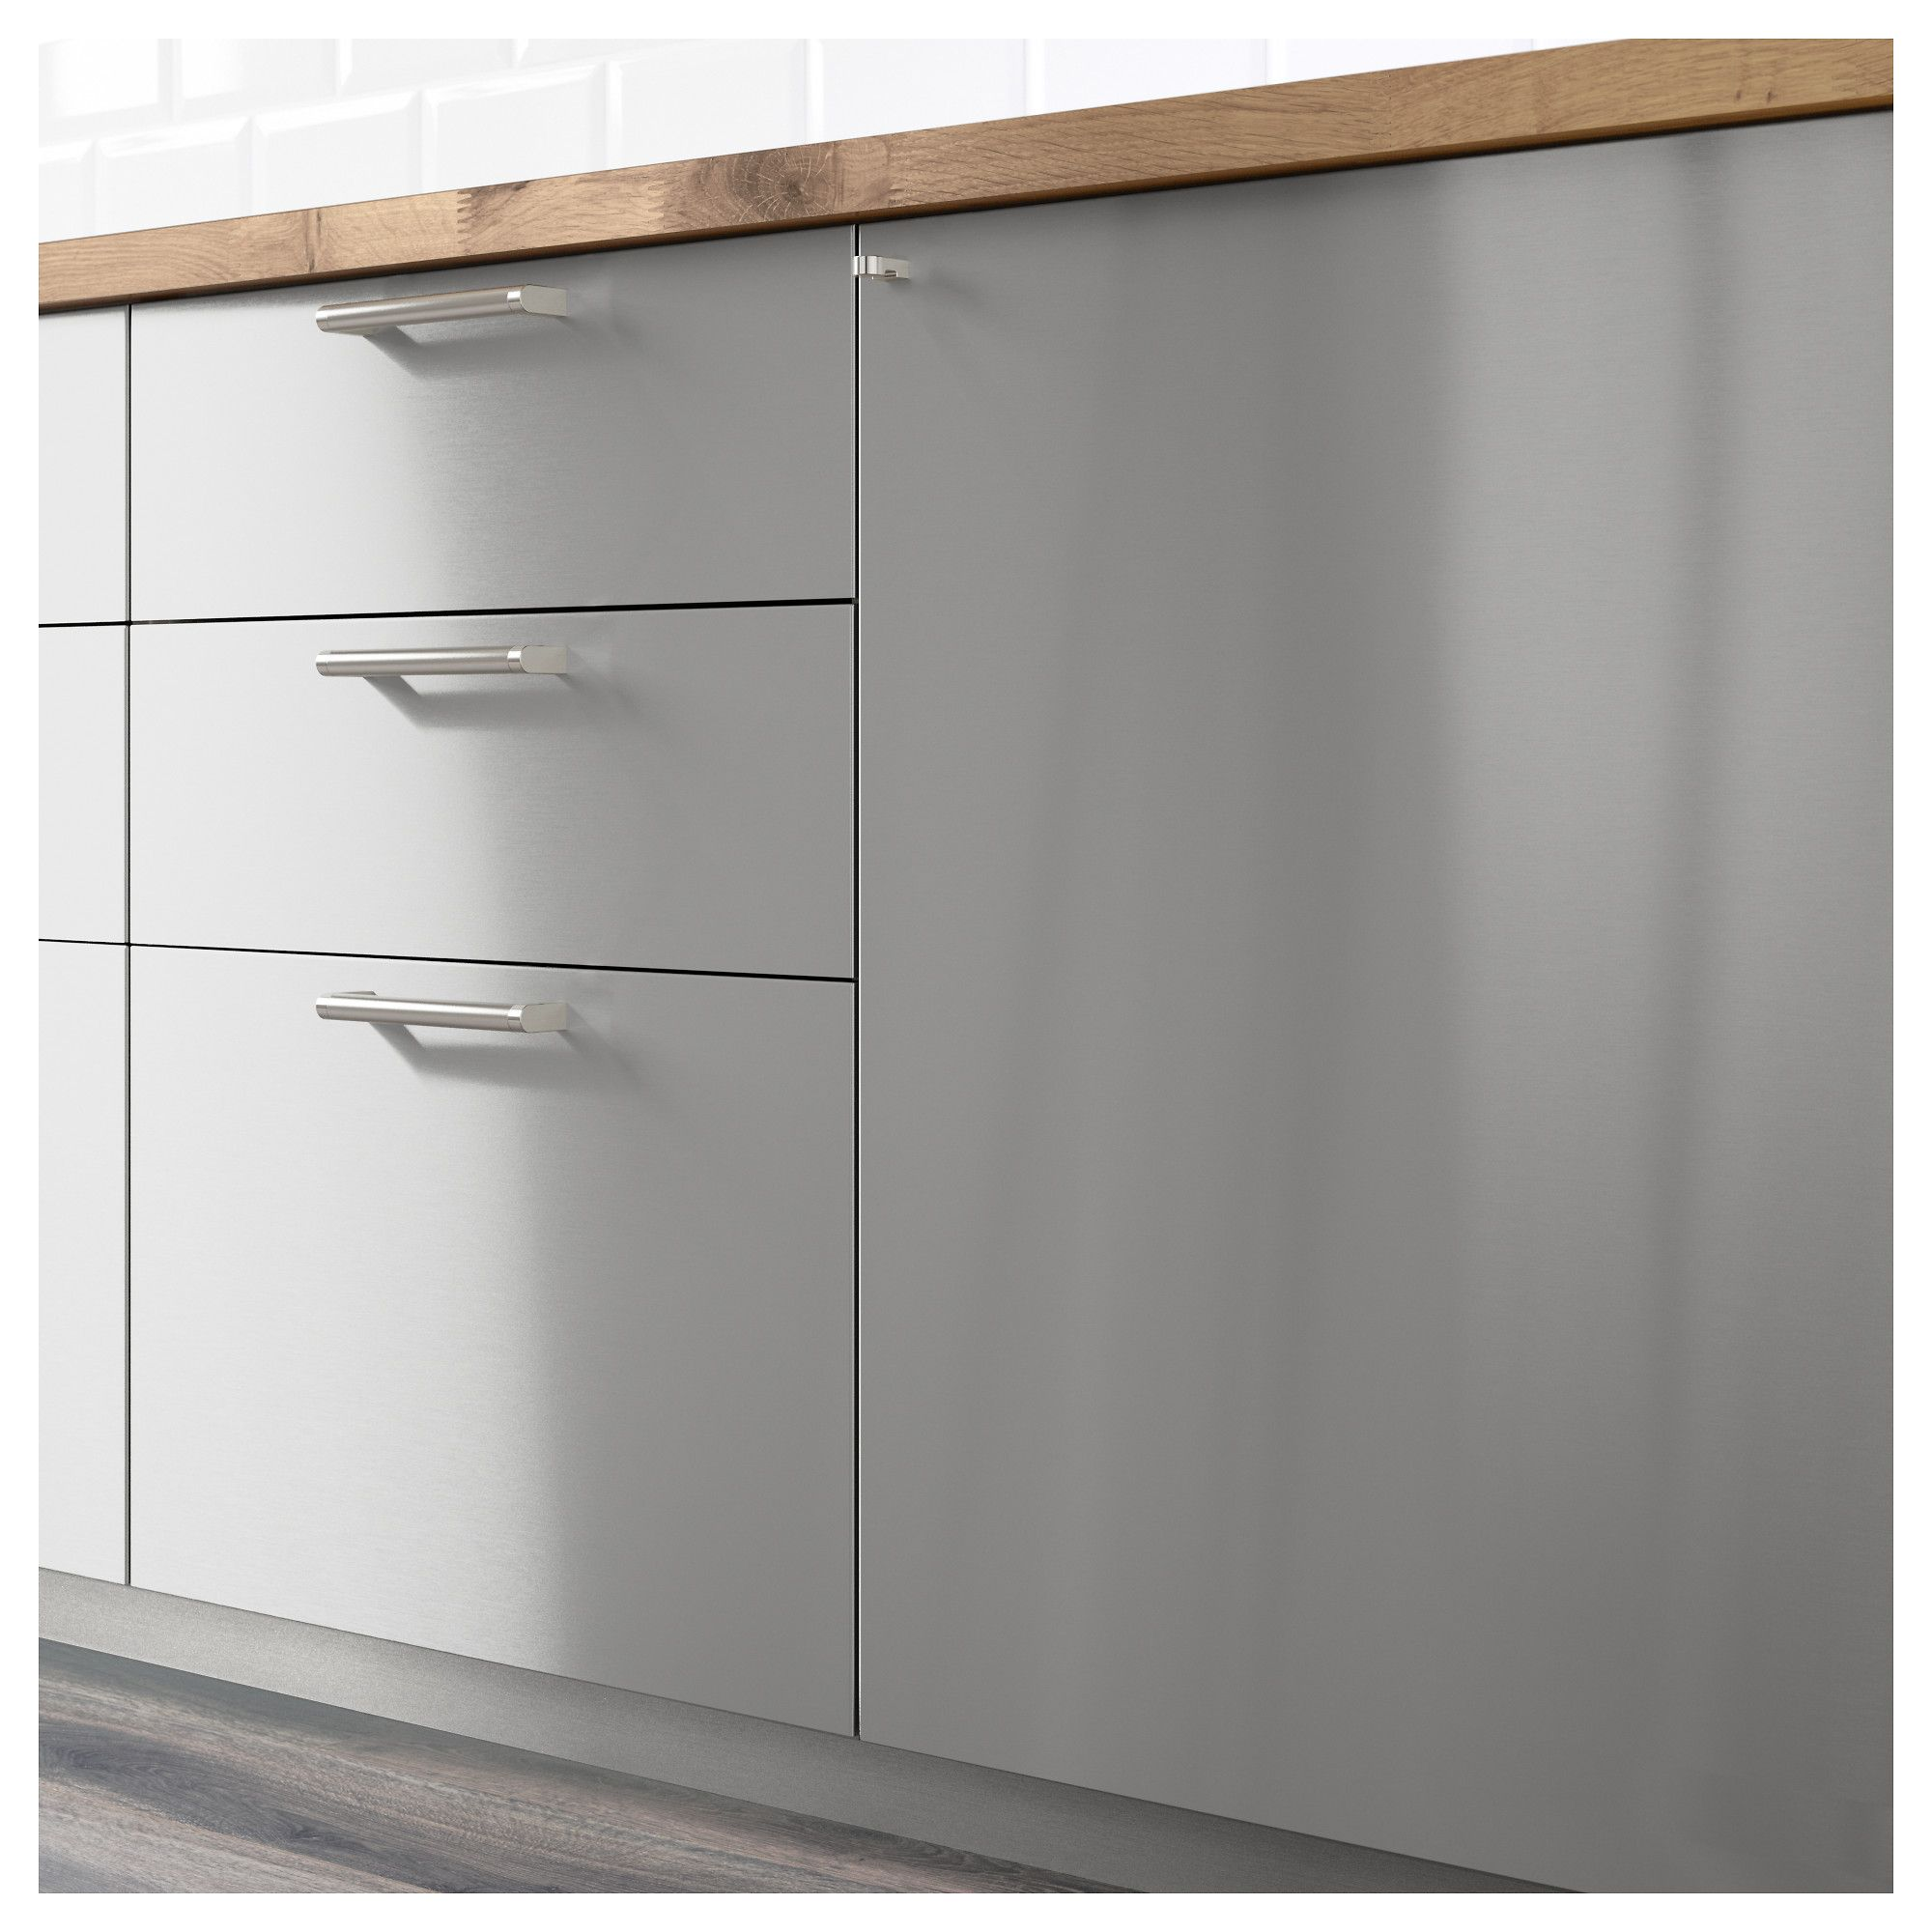 Fresh Home Furnishing Ideas And Affordable Furniture Steel Door Design Ikea Base Cabinets